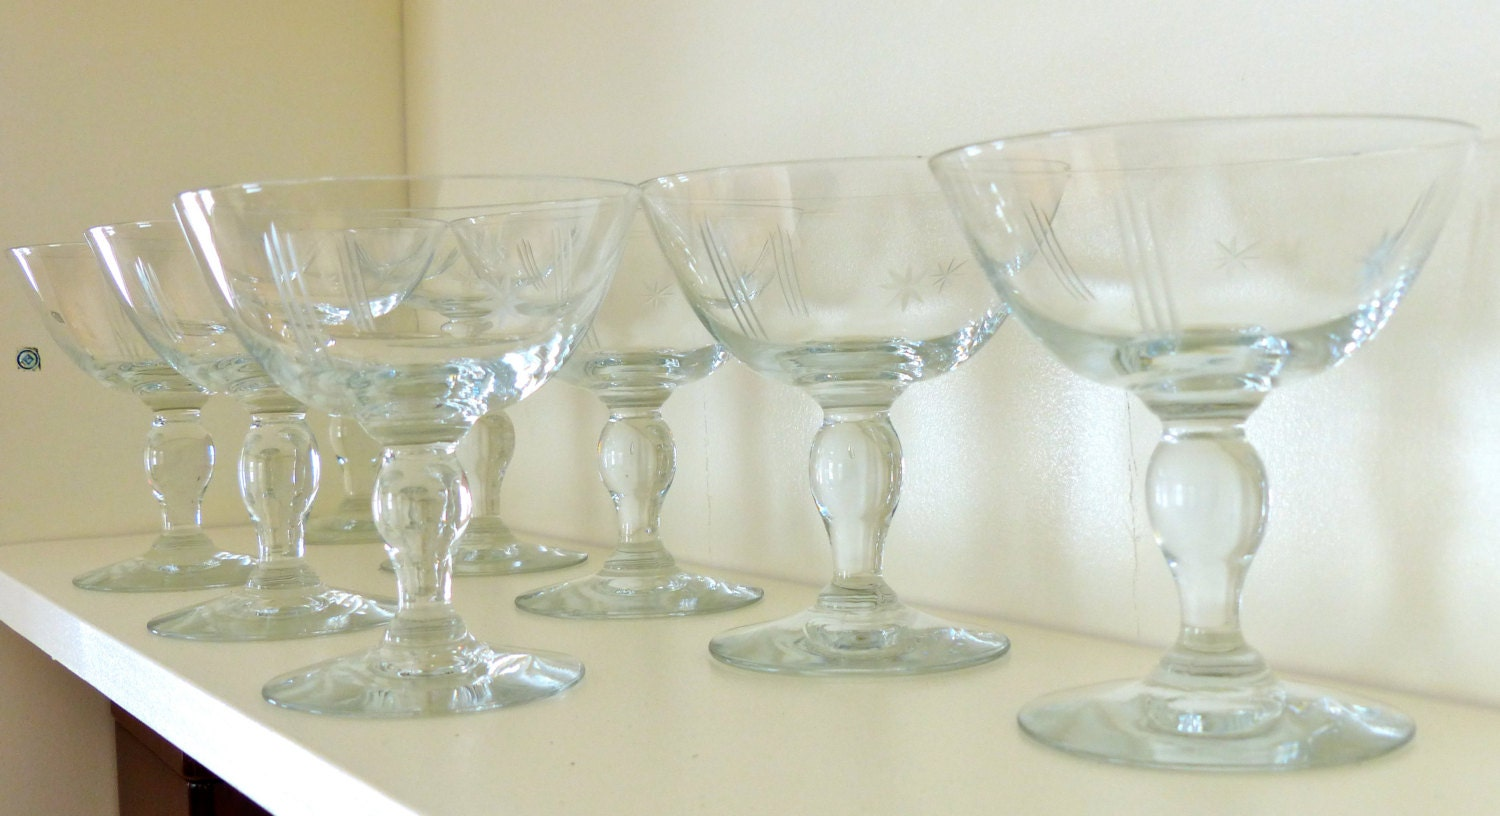 Crystal Champagne Glasses Etched Art Deco Set Of 7 1930 S Era Bulb Stems Clear Glass Stars Stripes Sorbet Coupe Glass